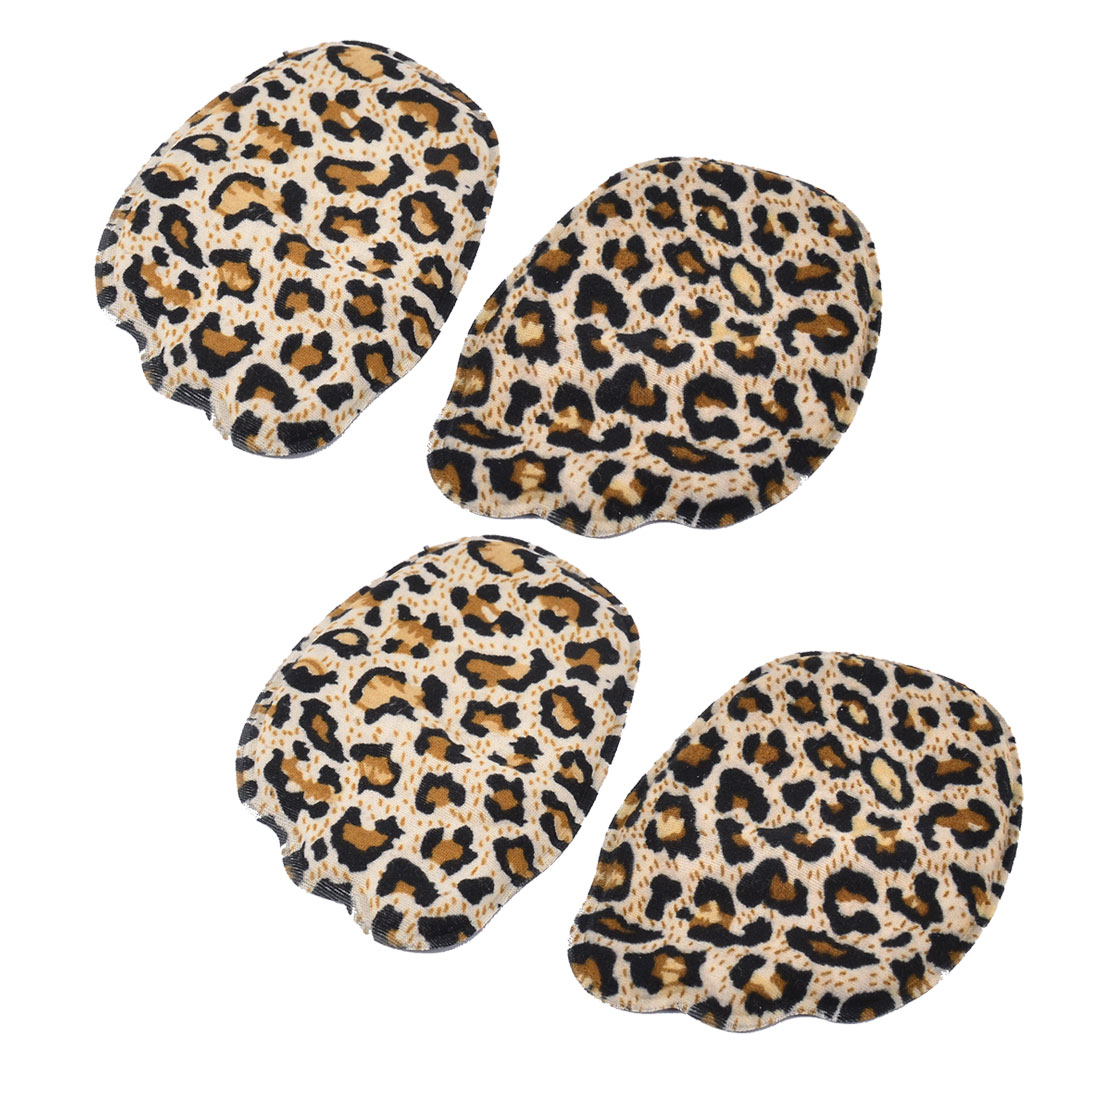 Lady Leopard Print Forefoot Front Half Insoles Shoes Pads Cushions 2 Pairs